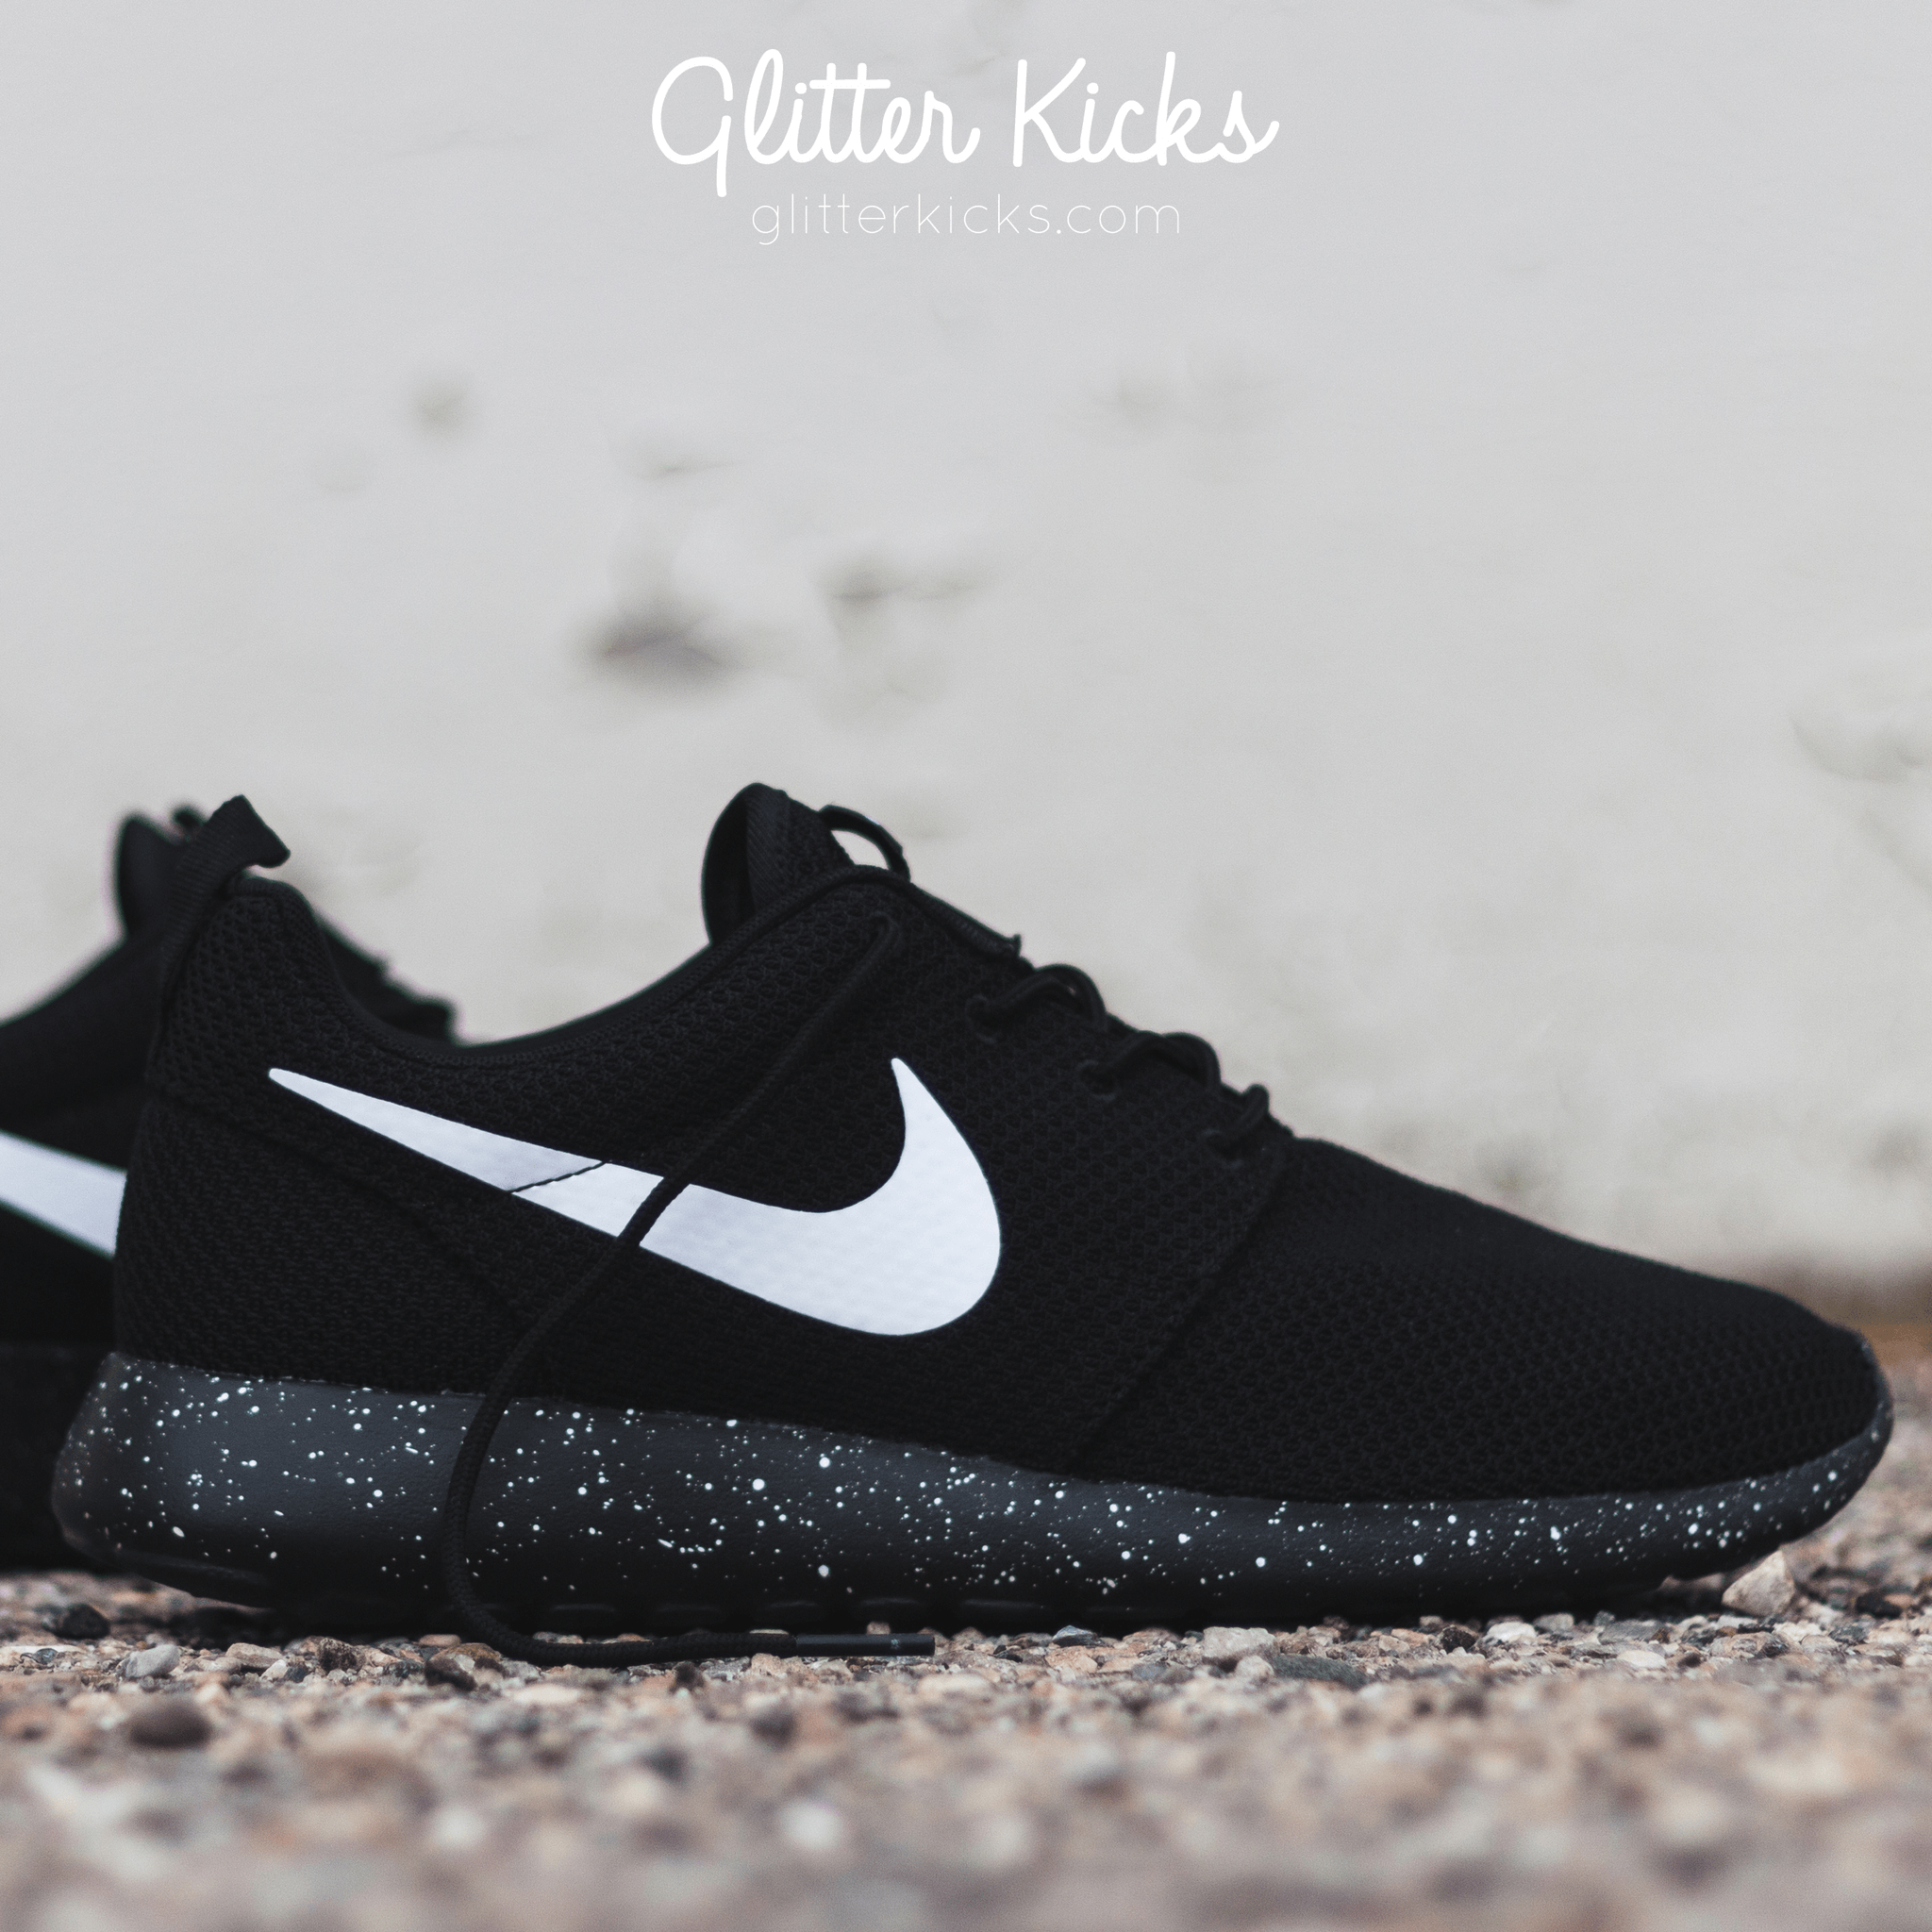 Nike Roshe One Customized by Glitter Kicks -  Oreo  Black   White Paint  Speckle deb43d3001